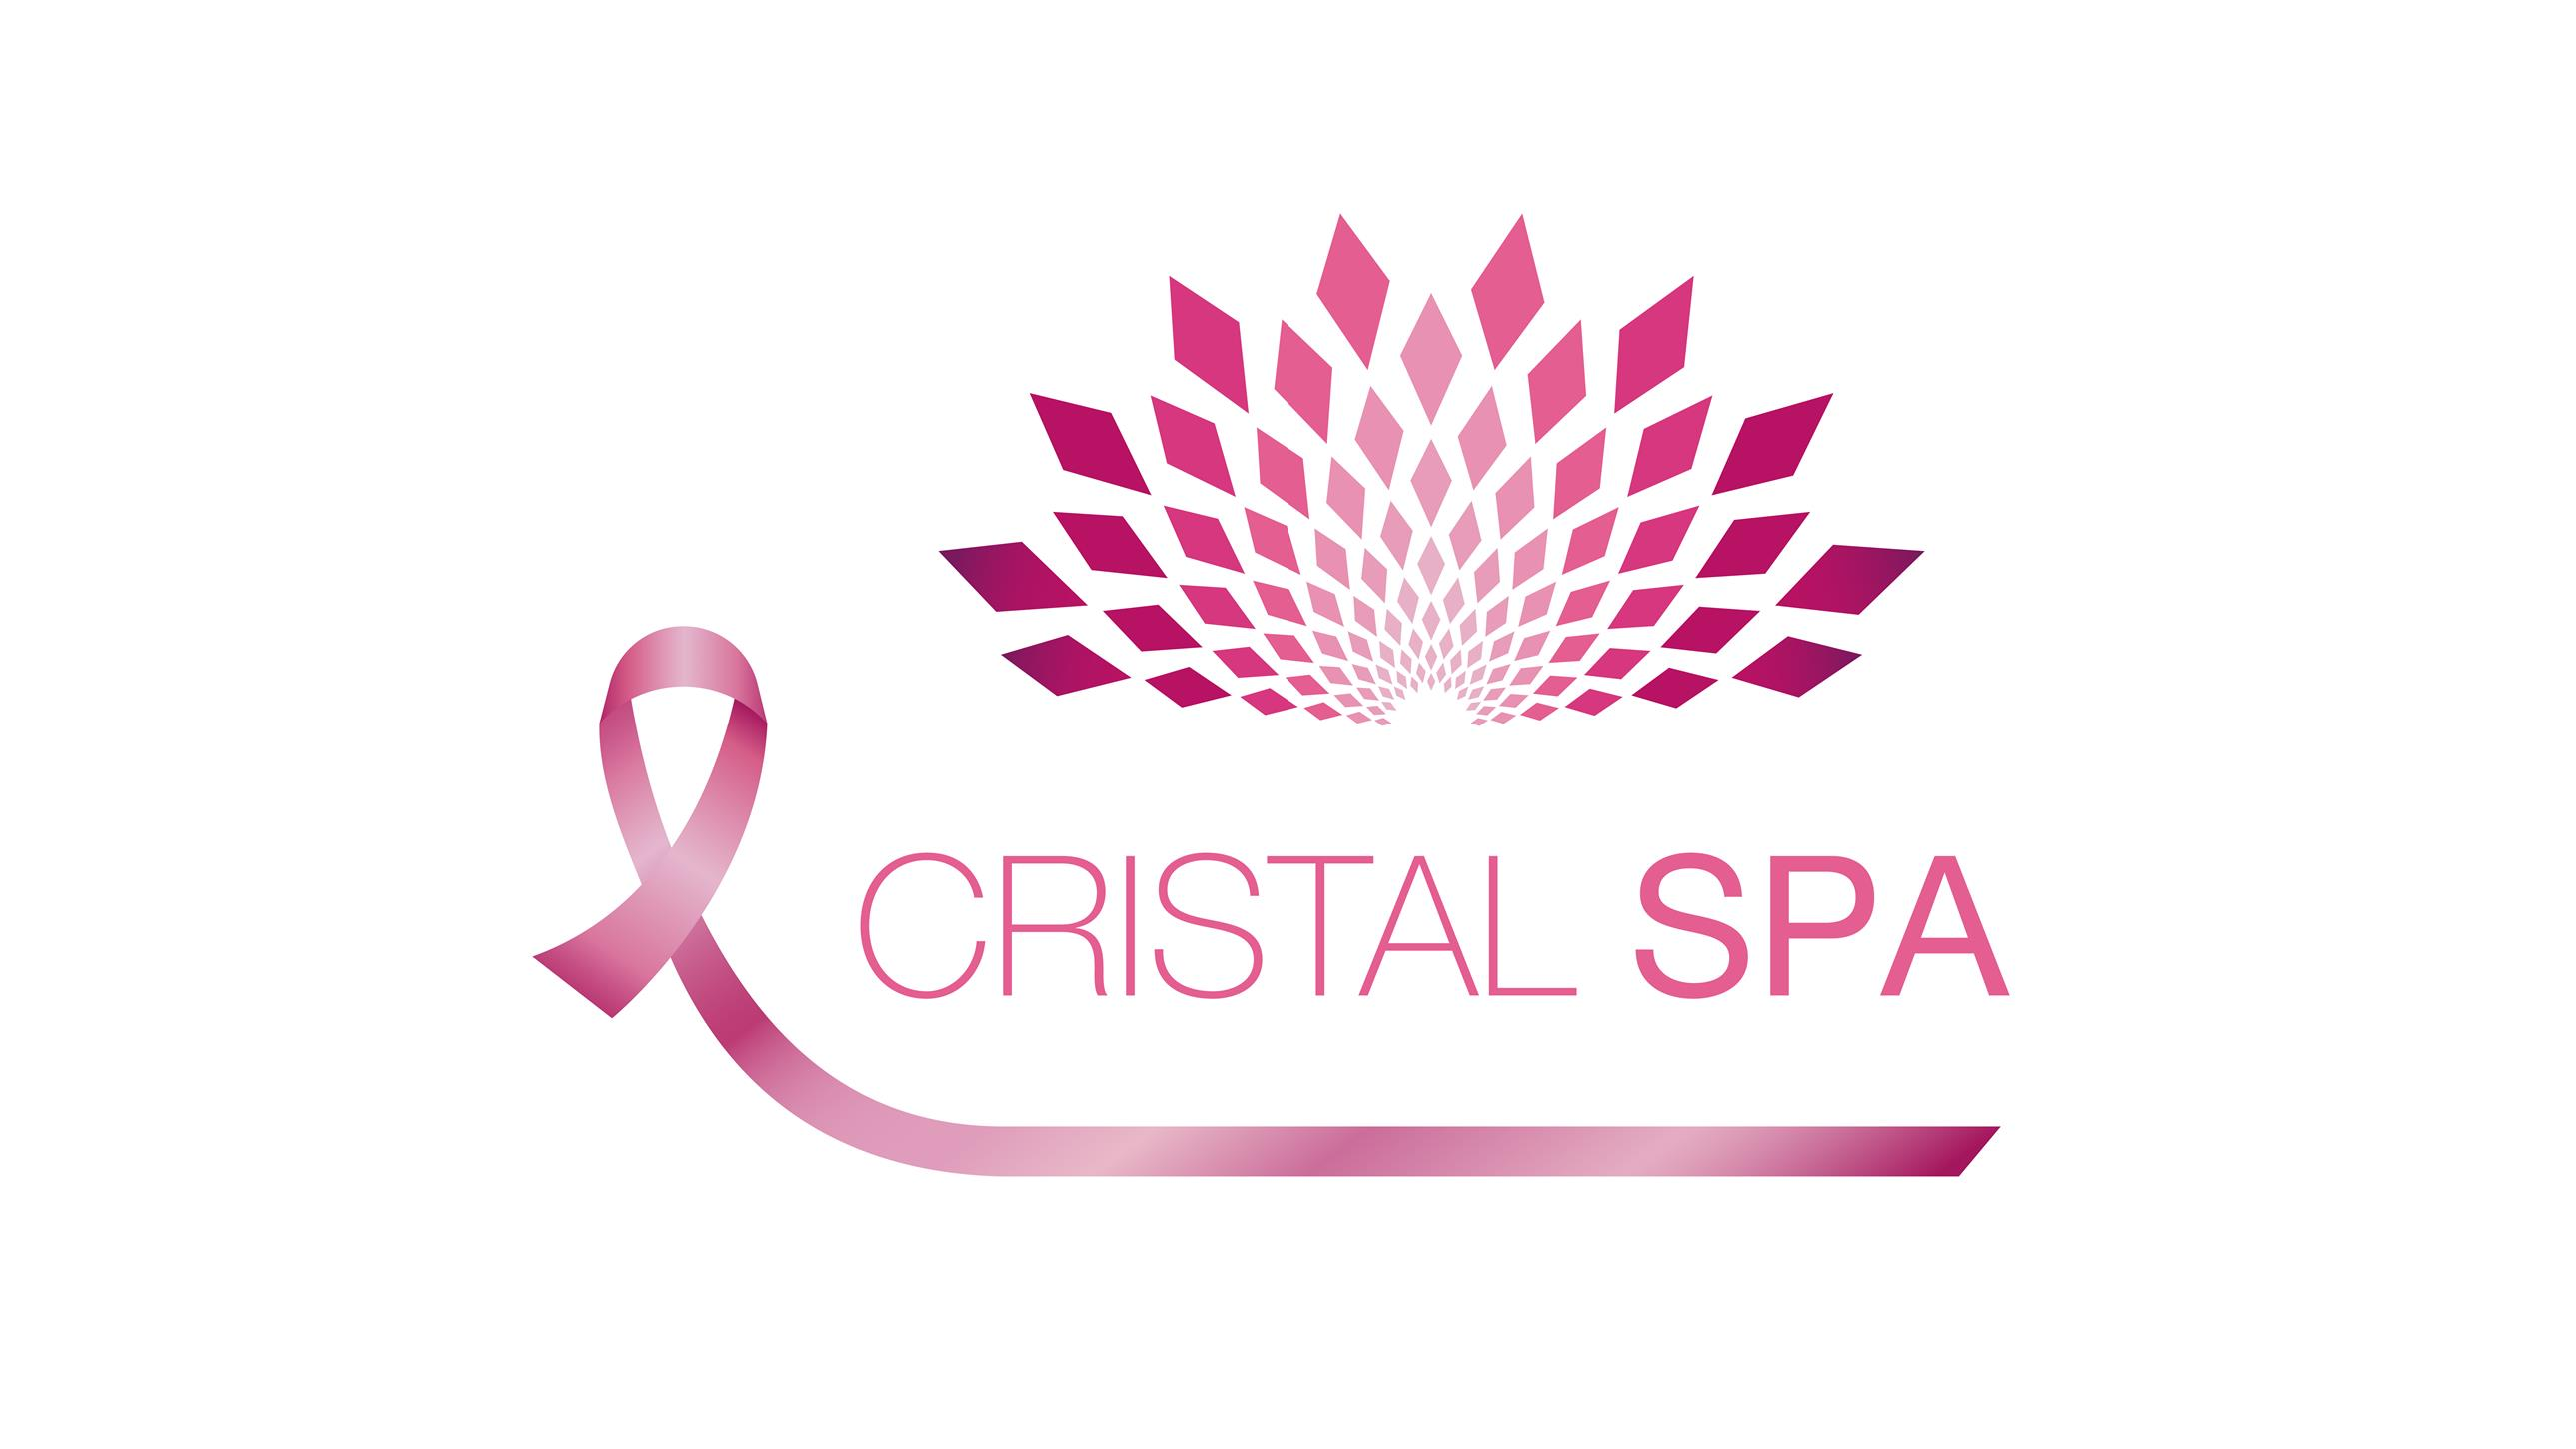 Cristal Spa se met en rose